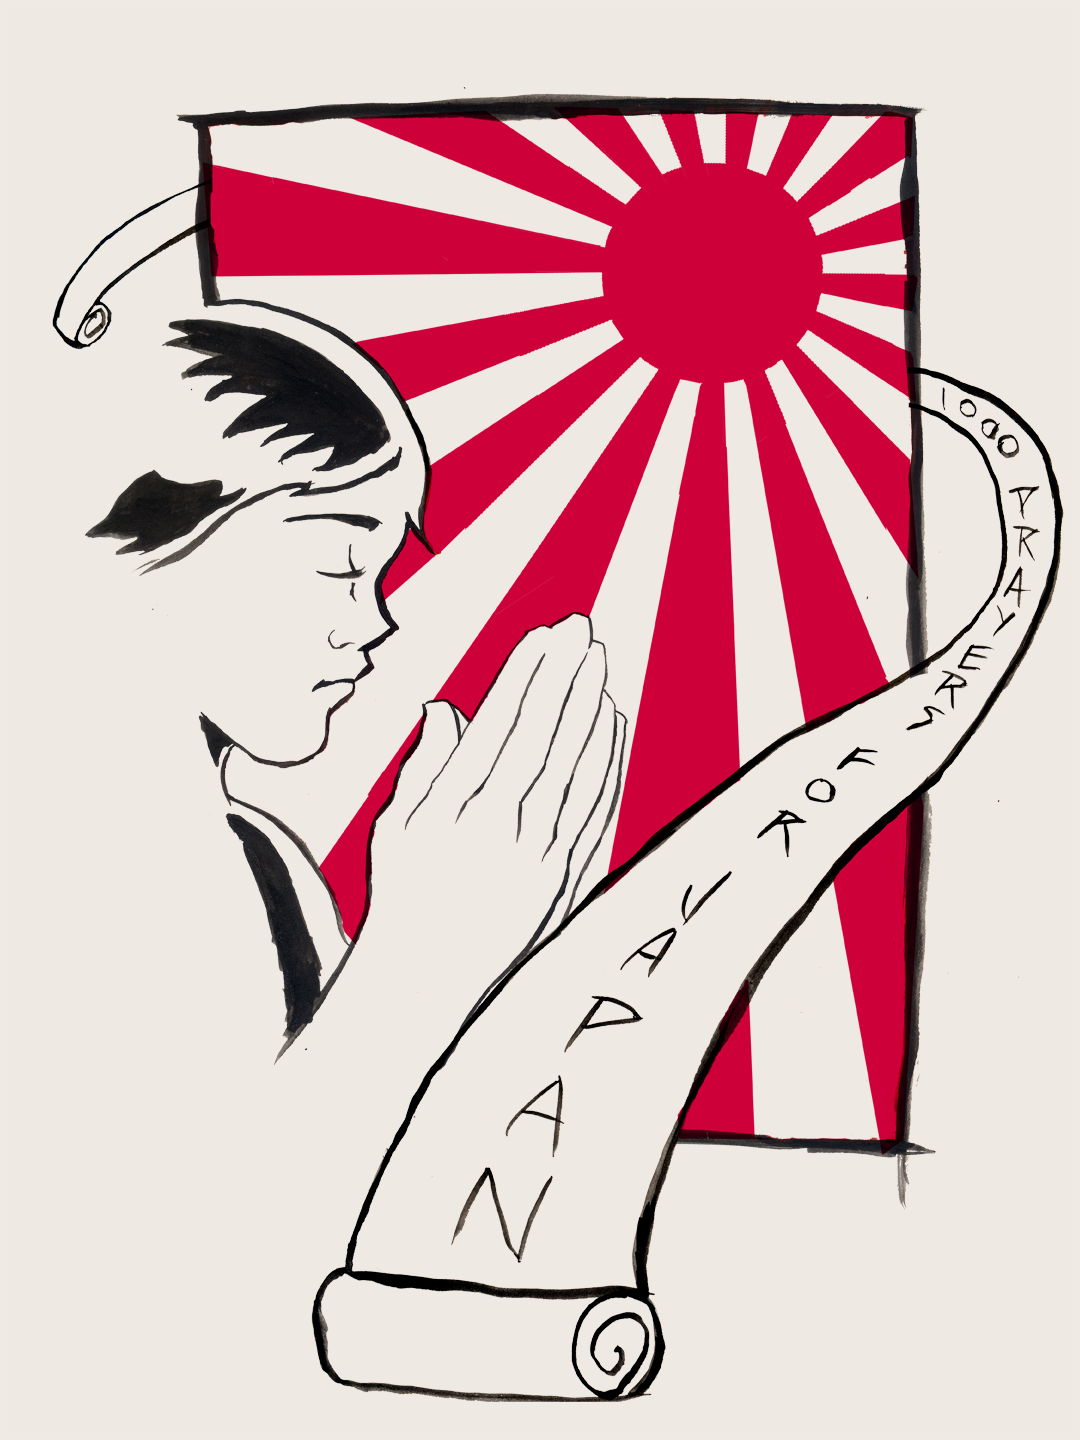 Design shirt japan - New T Shirt Design For Love And Water Designs Special Charity Contest In The Name Of 1000 Prayers For Japan An Organization Raising Funds To Aid Japan In